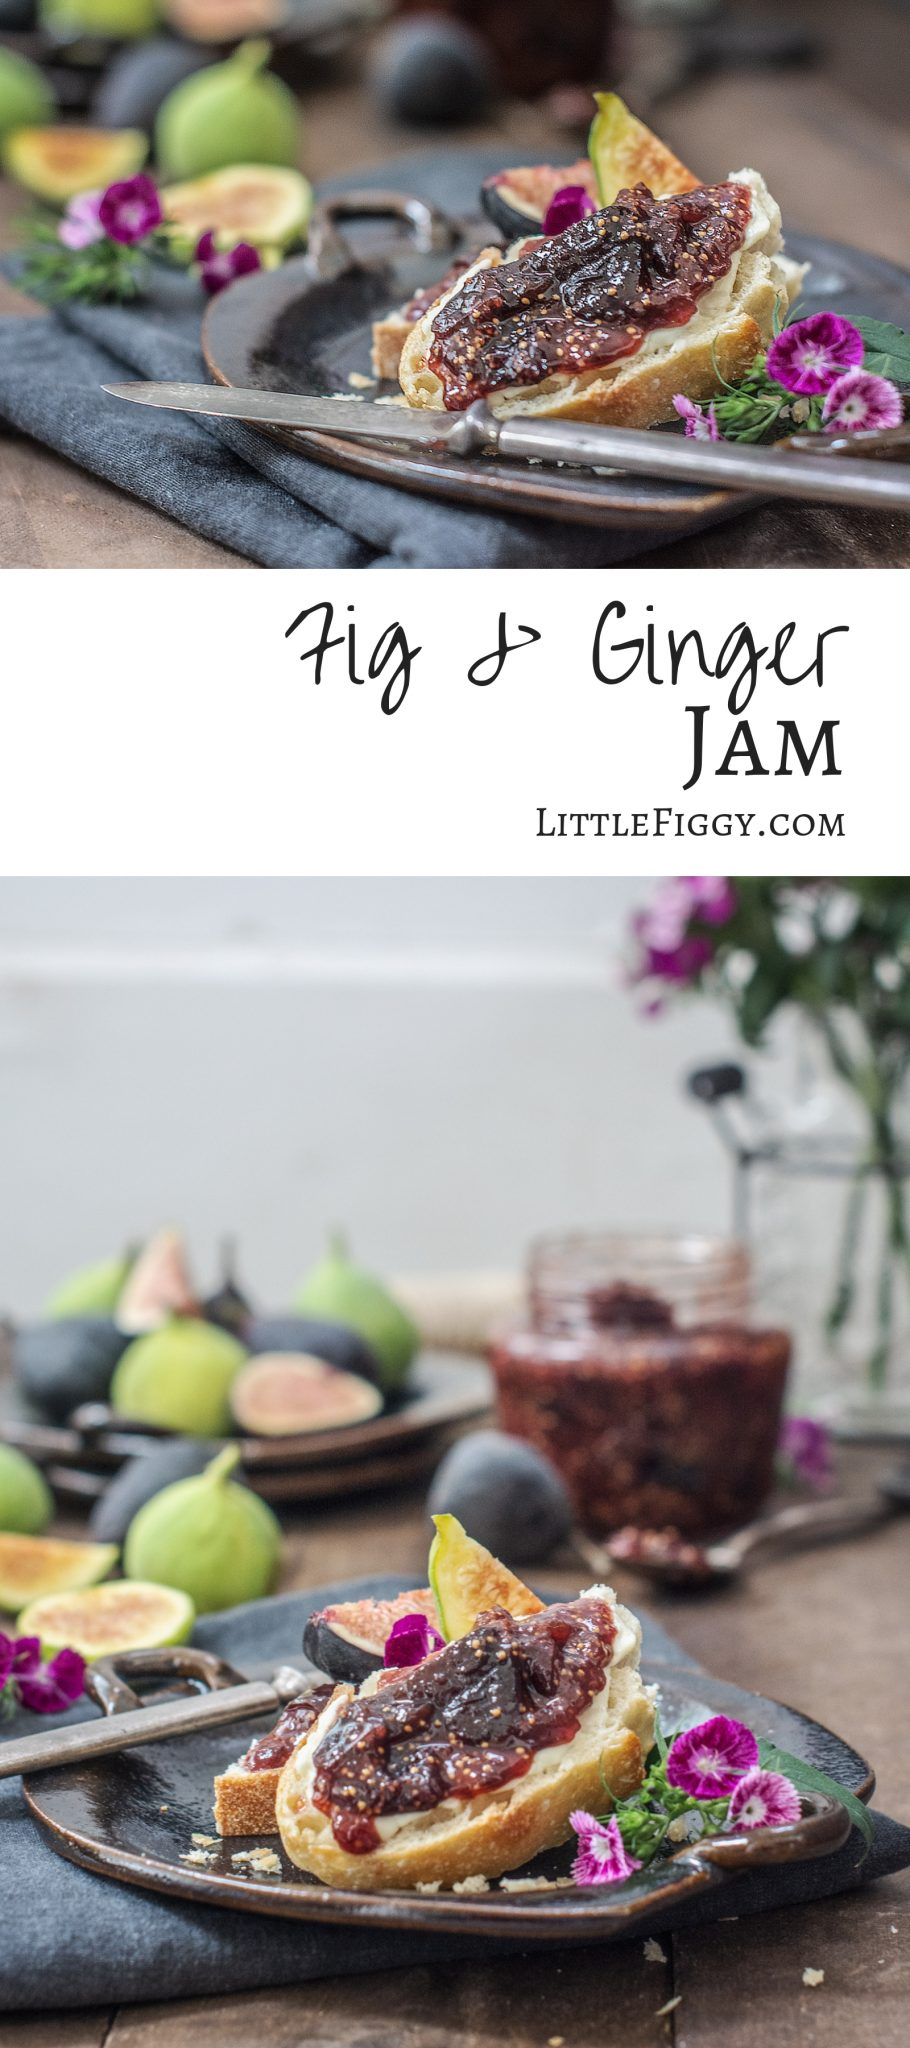 Enjoy making your own homemade Fig Jam recipe with a hint of ginger and cinnamon. Amazing on toast, stirred into yogurt, and so much more. Get the recipe at Little Figgy Food #figs #recipeoftheday #jams #preserves #howtomake #freshfigs